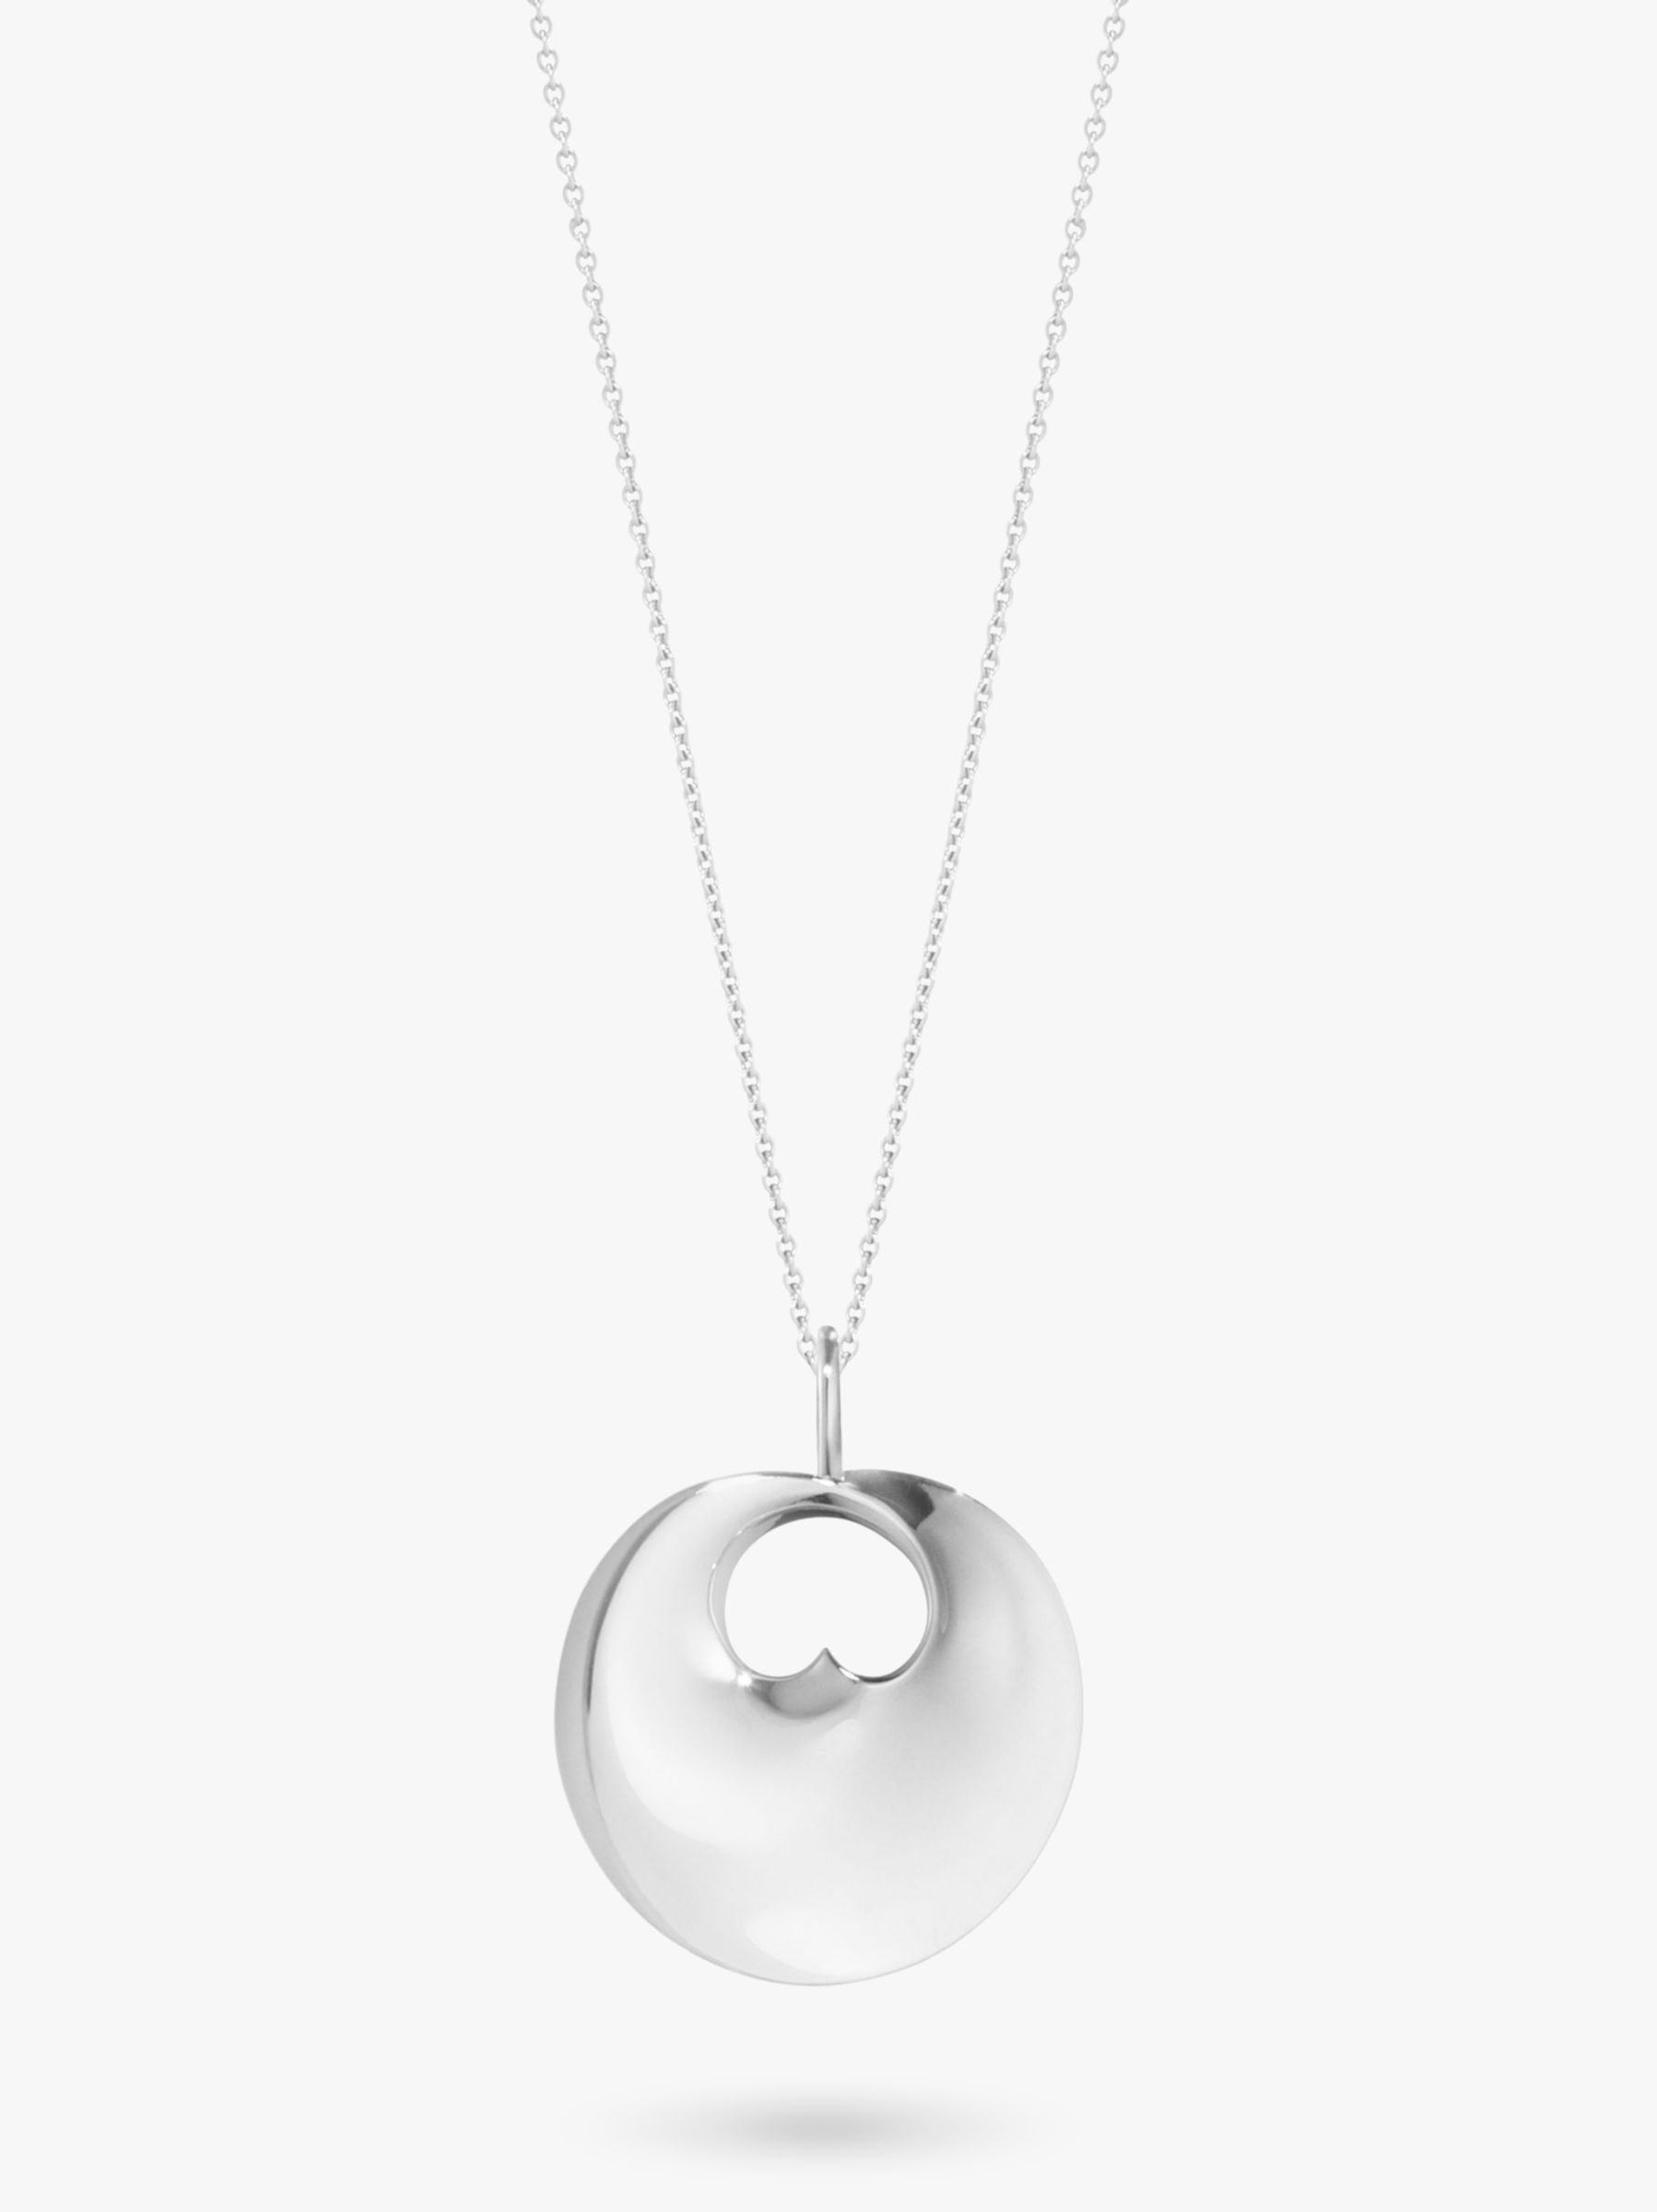 Georg Jensen Georg Jensen Hidden Heart Pendant Necklace, Silver